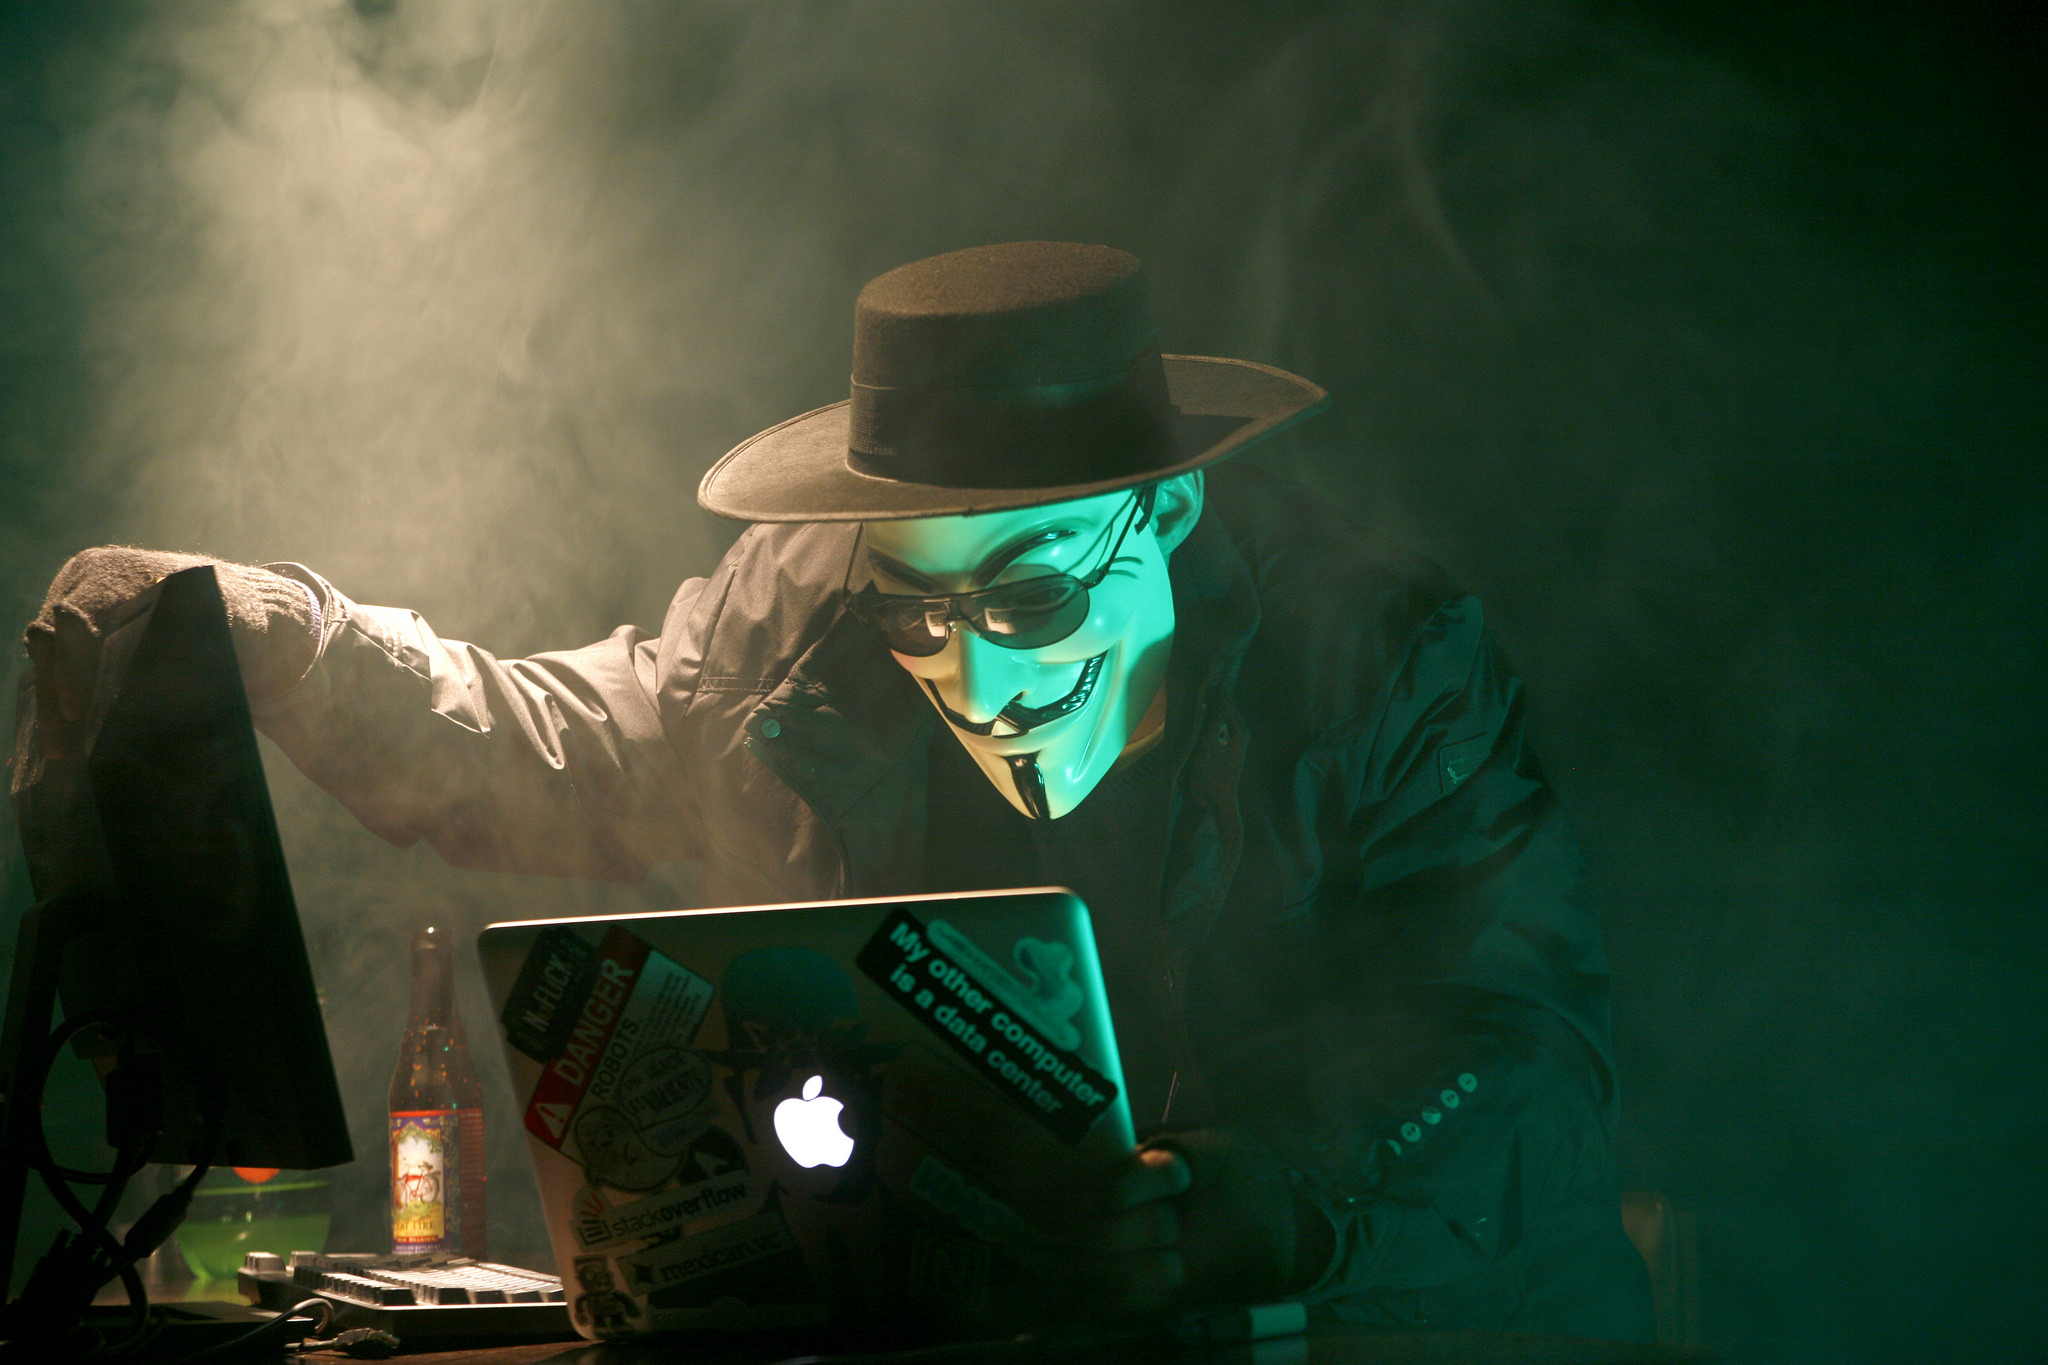 A person in a dark hat and trench coat peers down at two computer monitors. They are wearing a white mask, hiding their identity. The room is dark, and smoke floats in the air.